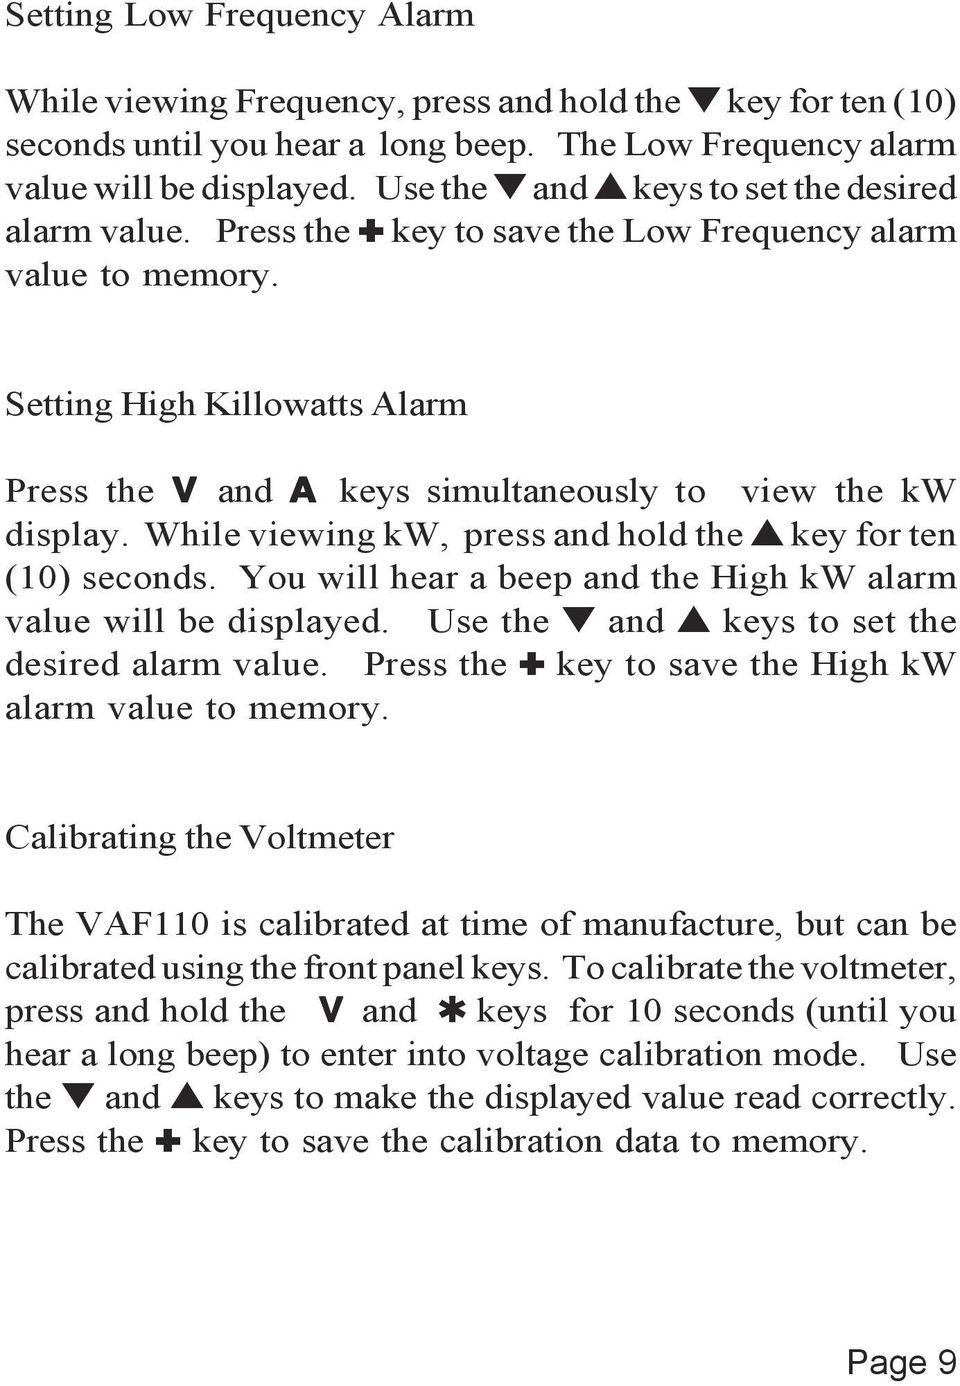 Setting High Killowatts Alarm Press the V and A keys simultaneously to view the kw display. While viewing kw, press and hold the s key for ten (10) seconds.